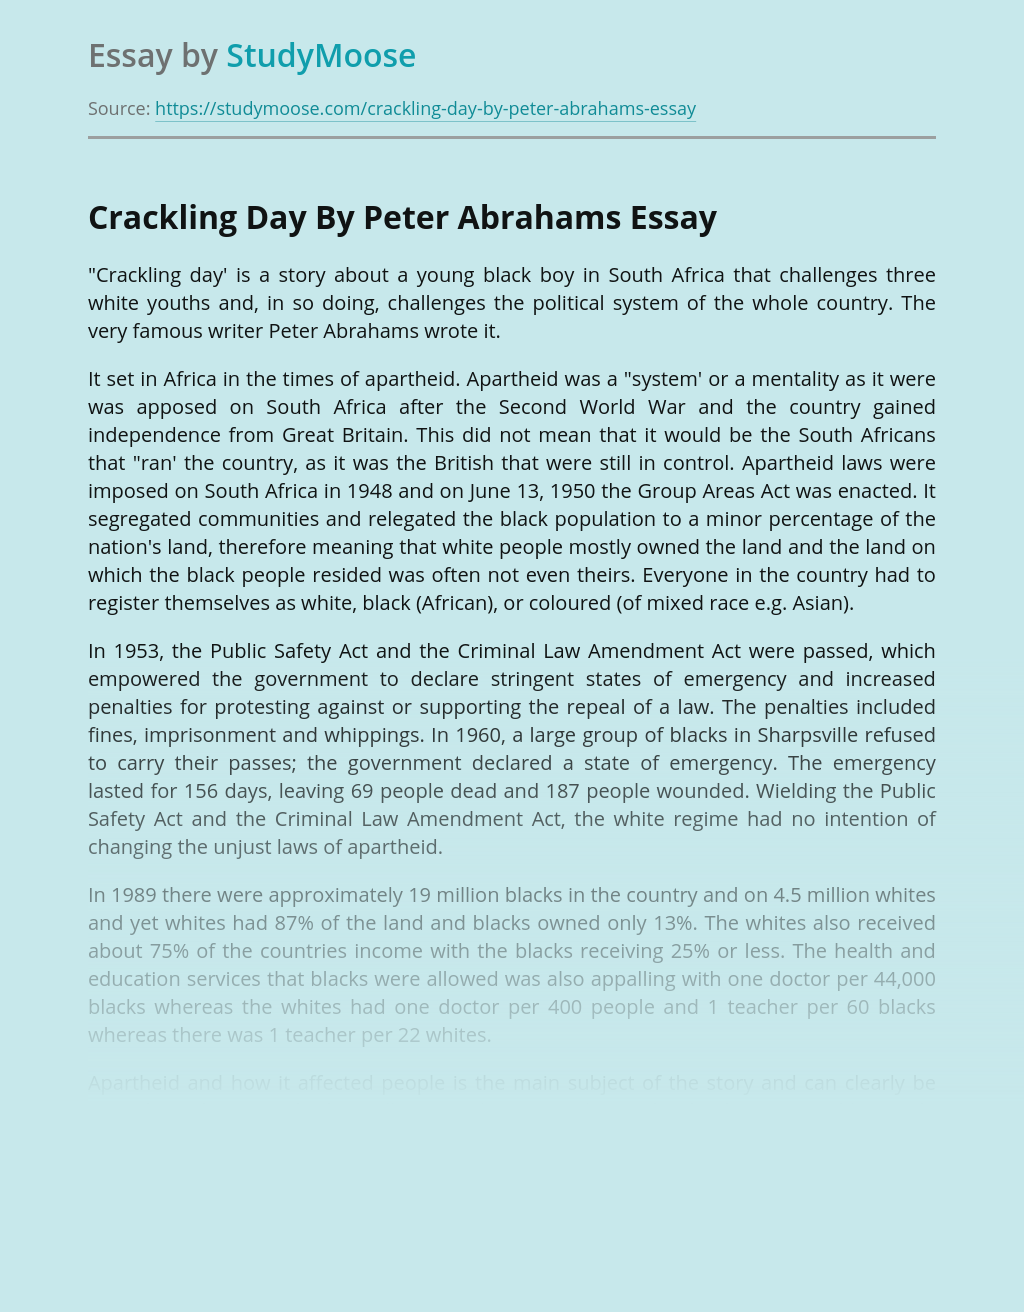 Crackling Day By Peter Abrahams